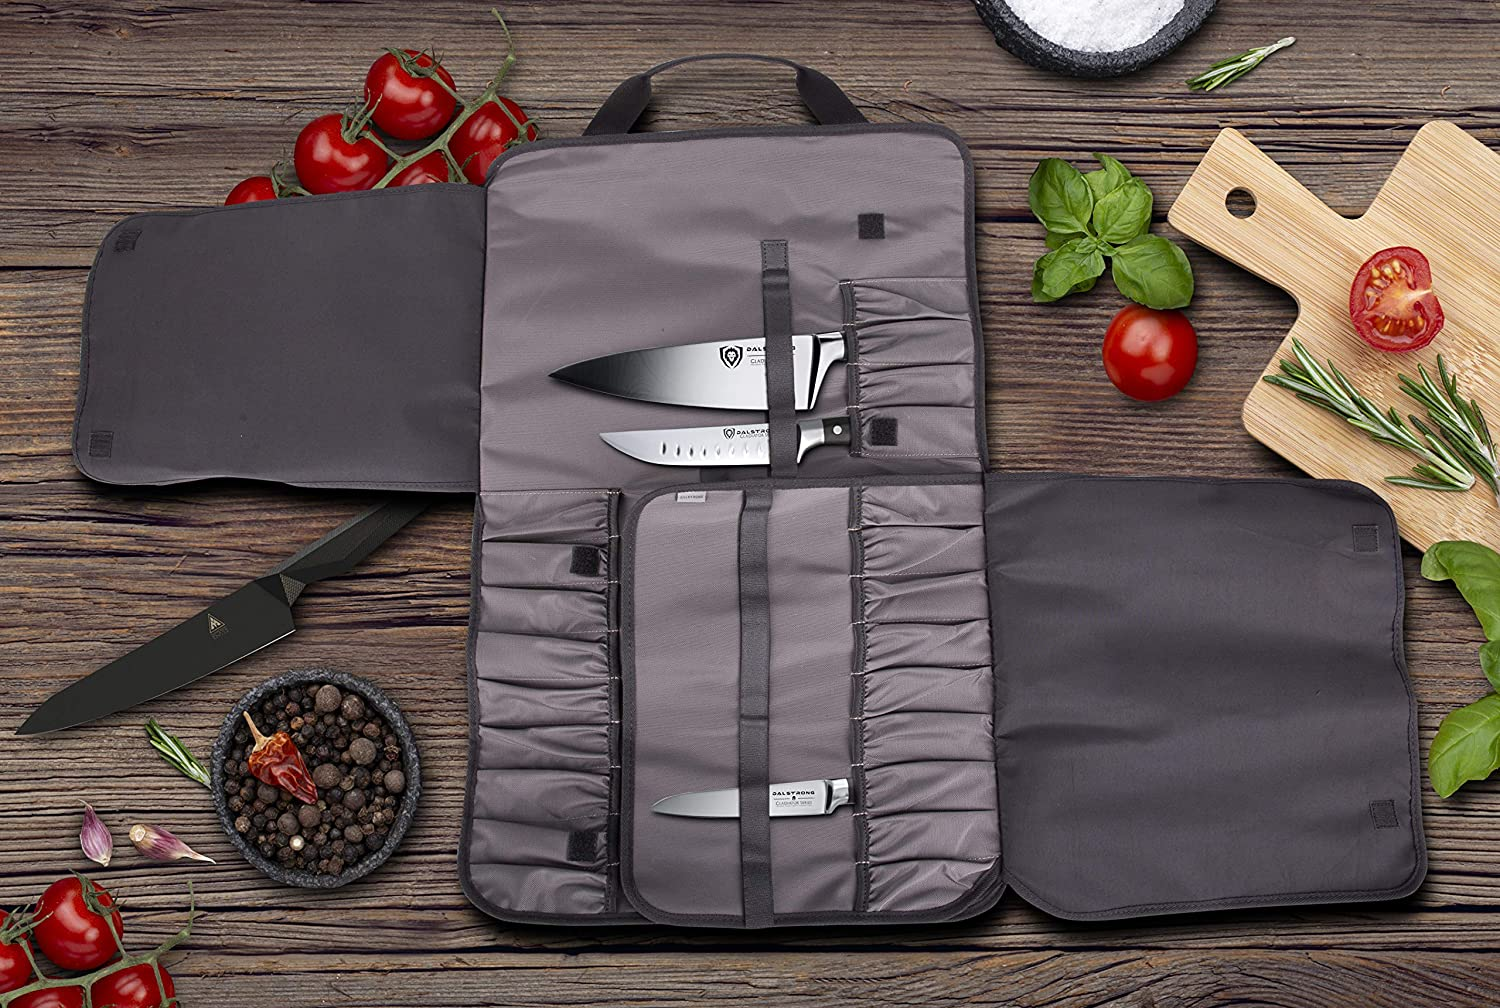 Best premium & large Japanese knife roll- DALSTRONG Ballistic Series in use